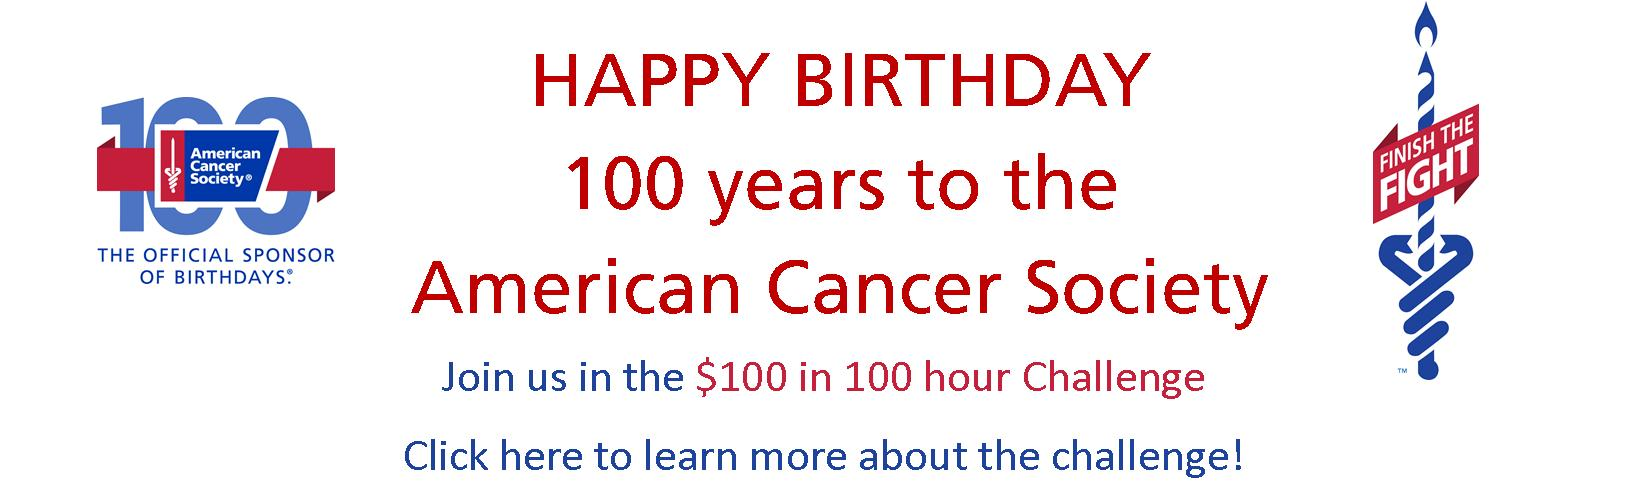 100th Birthday_Front Page image